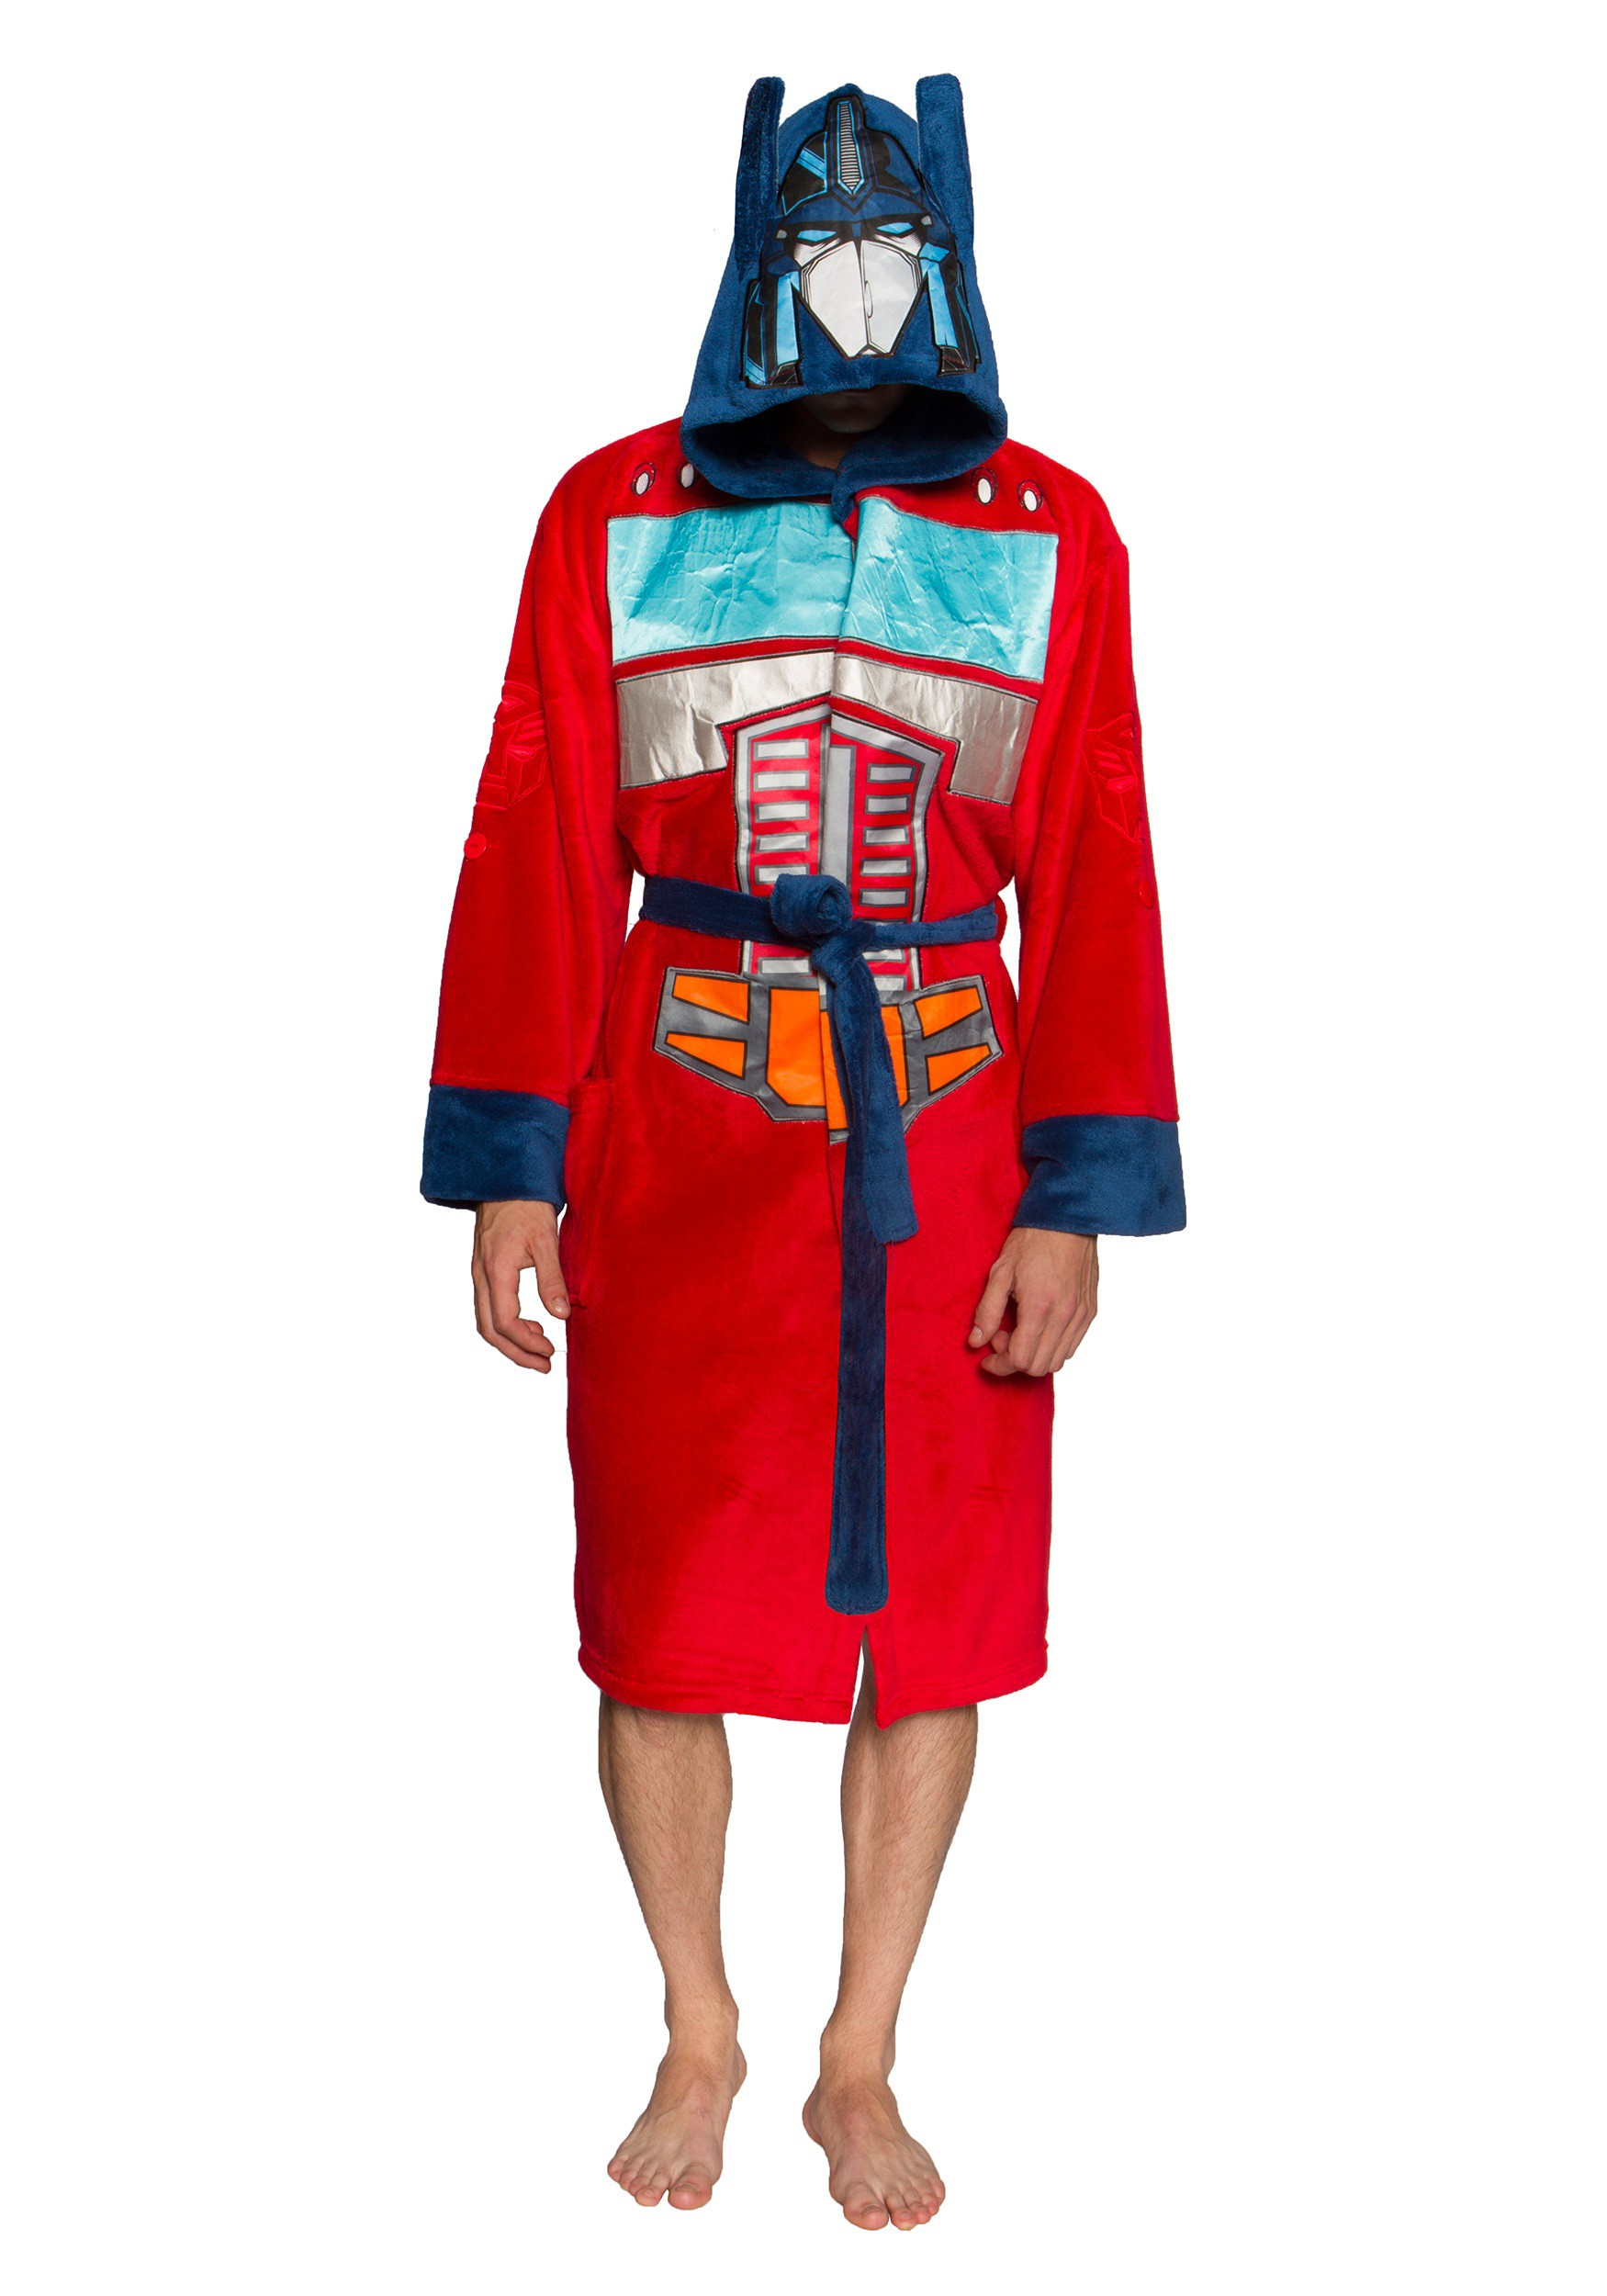 Transformers Optimus Prime Bathrobe